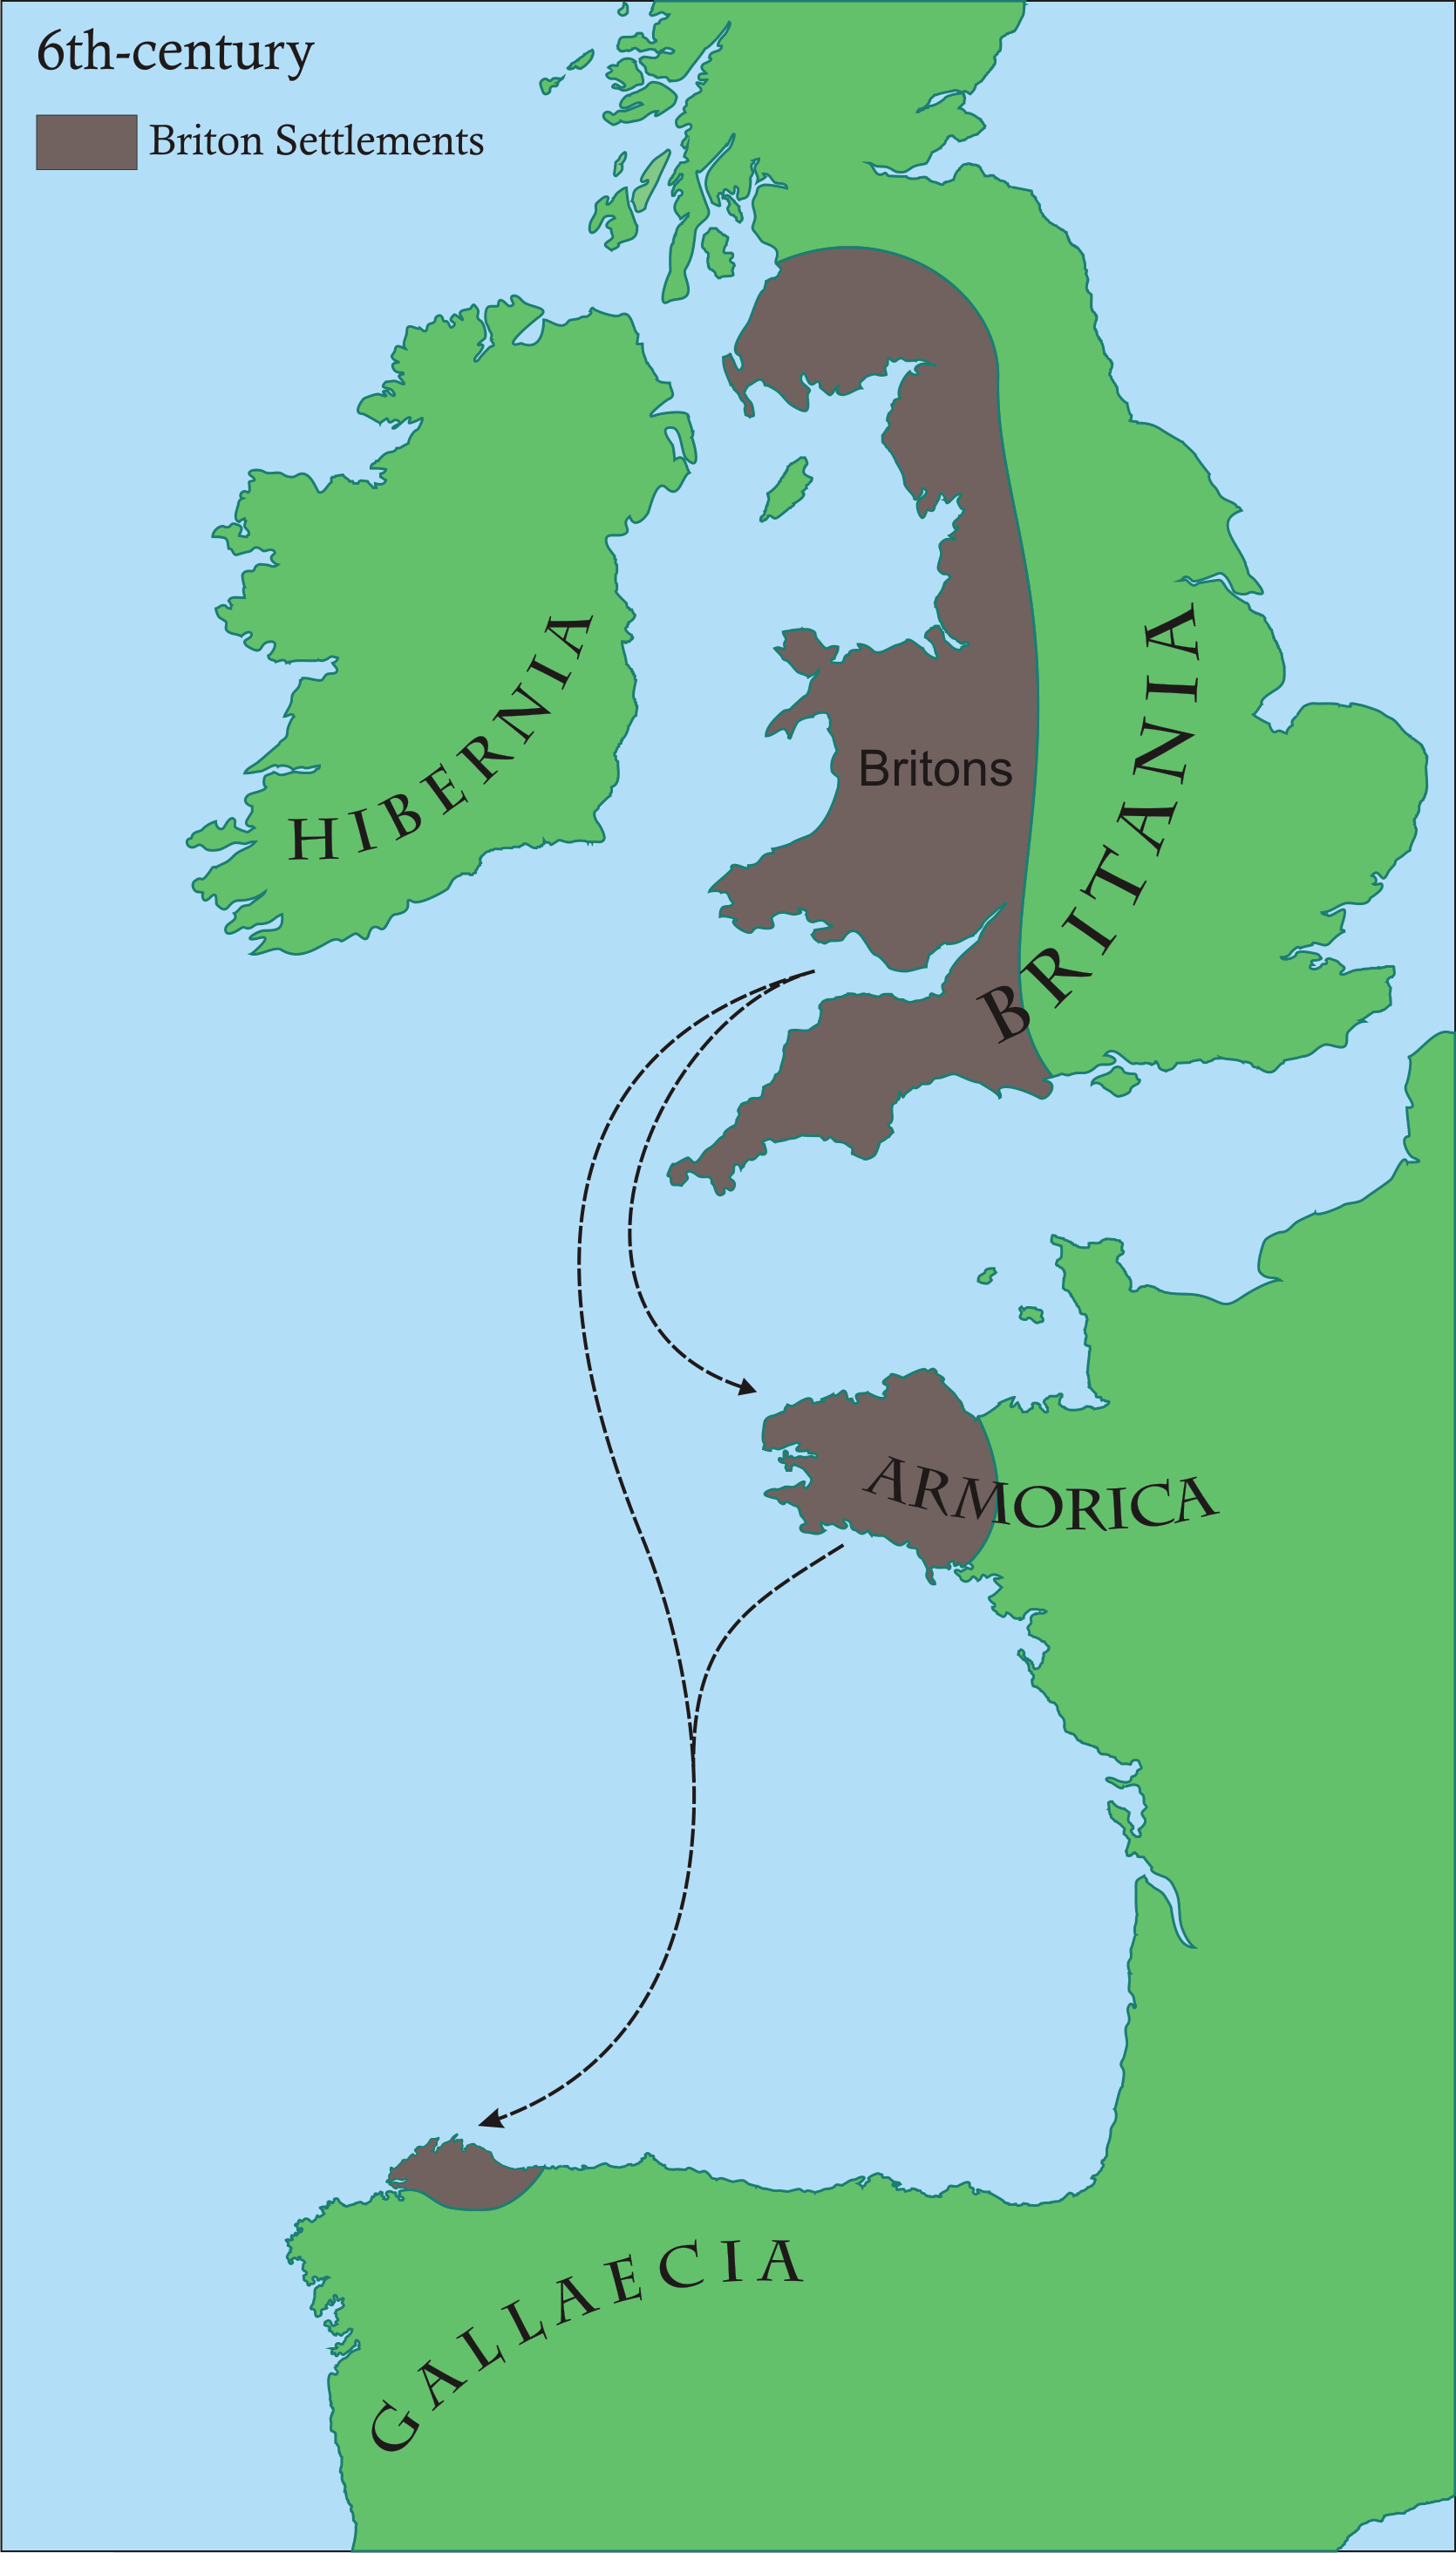 The Brythonic community around the 6th century. The sea was a communication medium rather than a barrier.